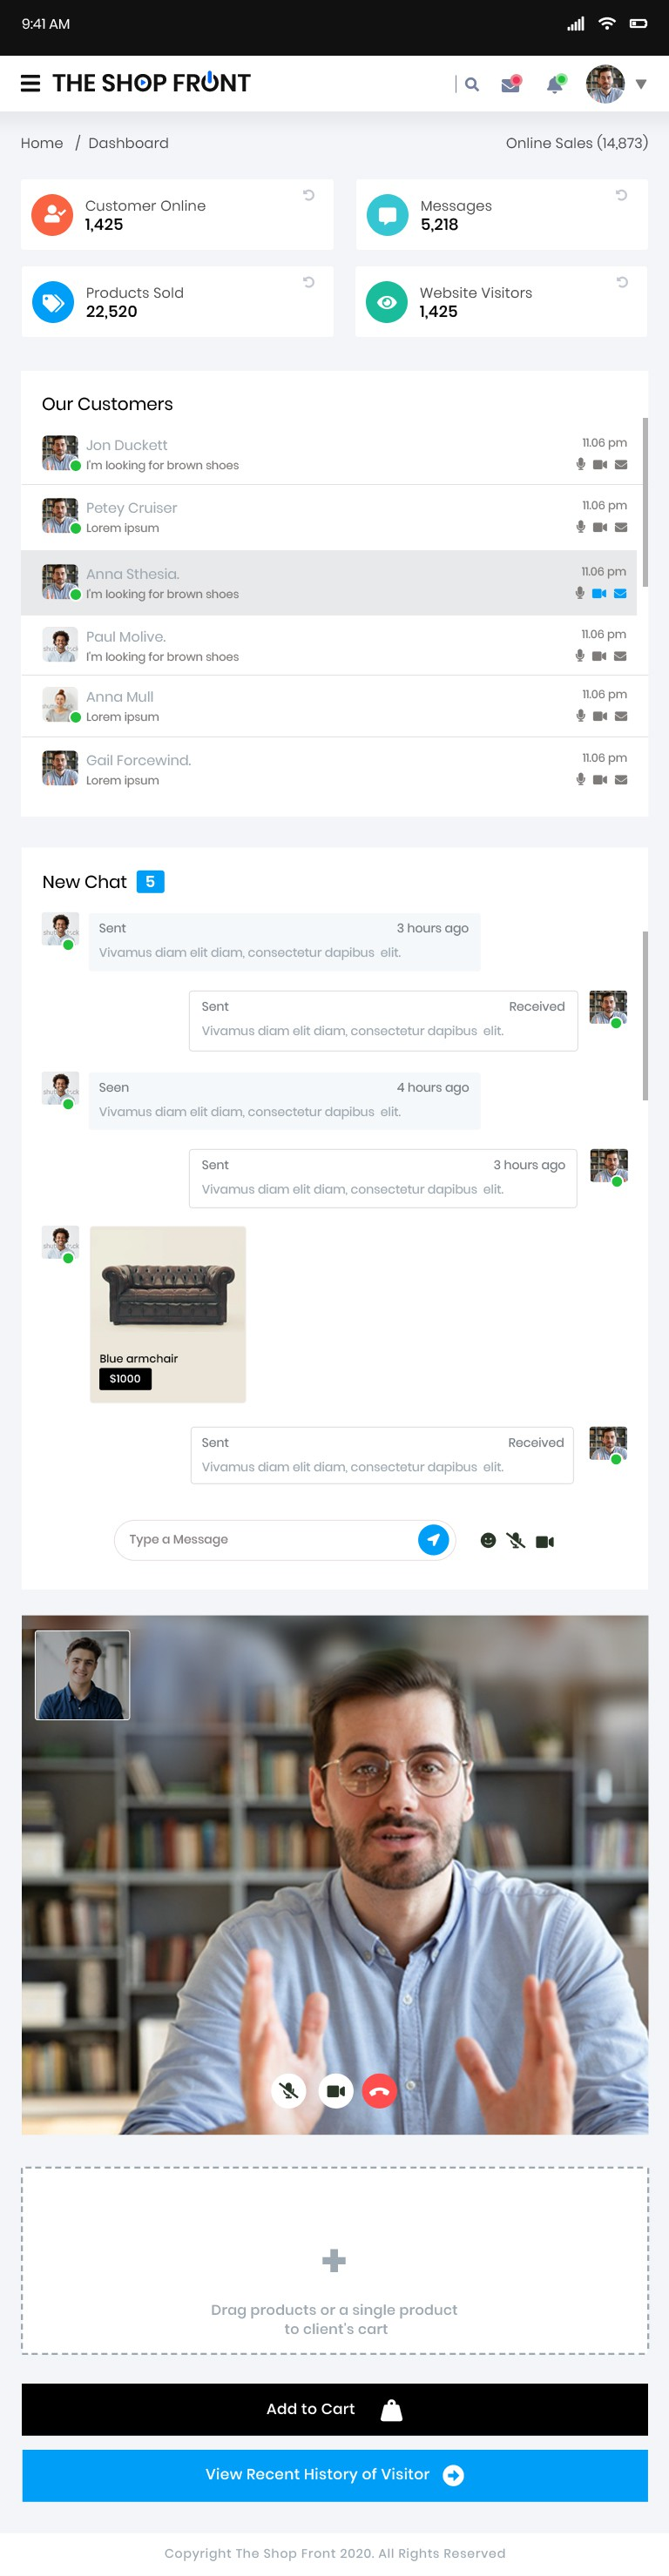 Create peer to peer (p2p) online shopping experience with videochat